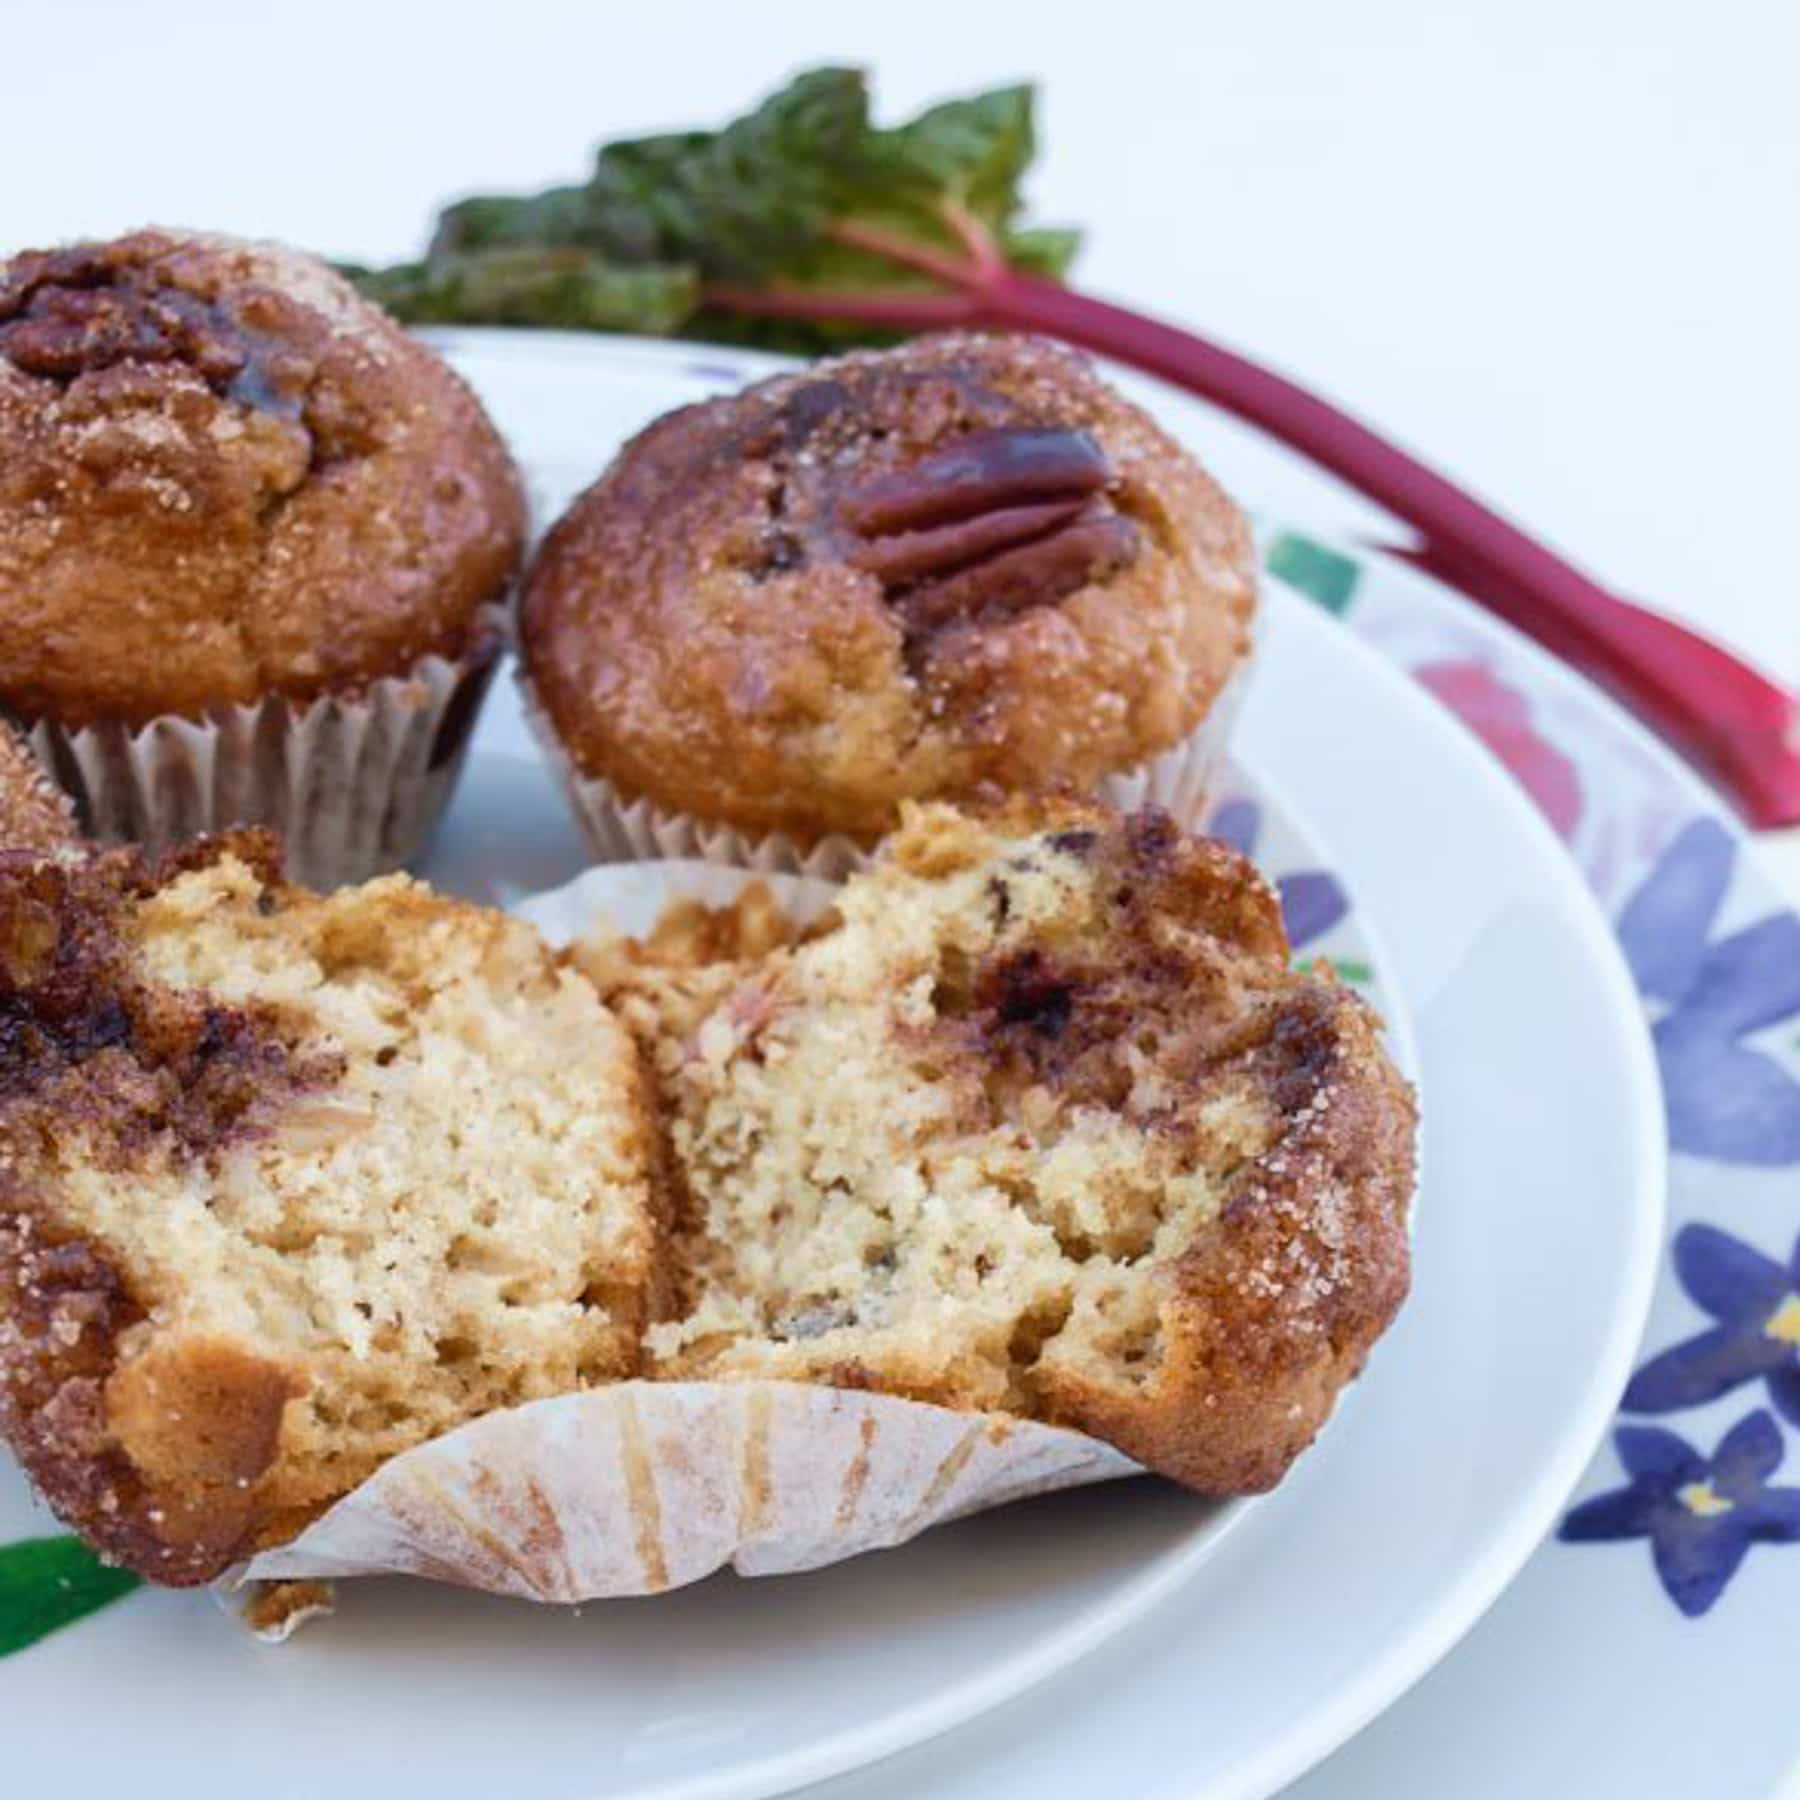 Rhubarb and Pecan Muffins